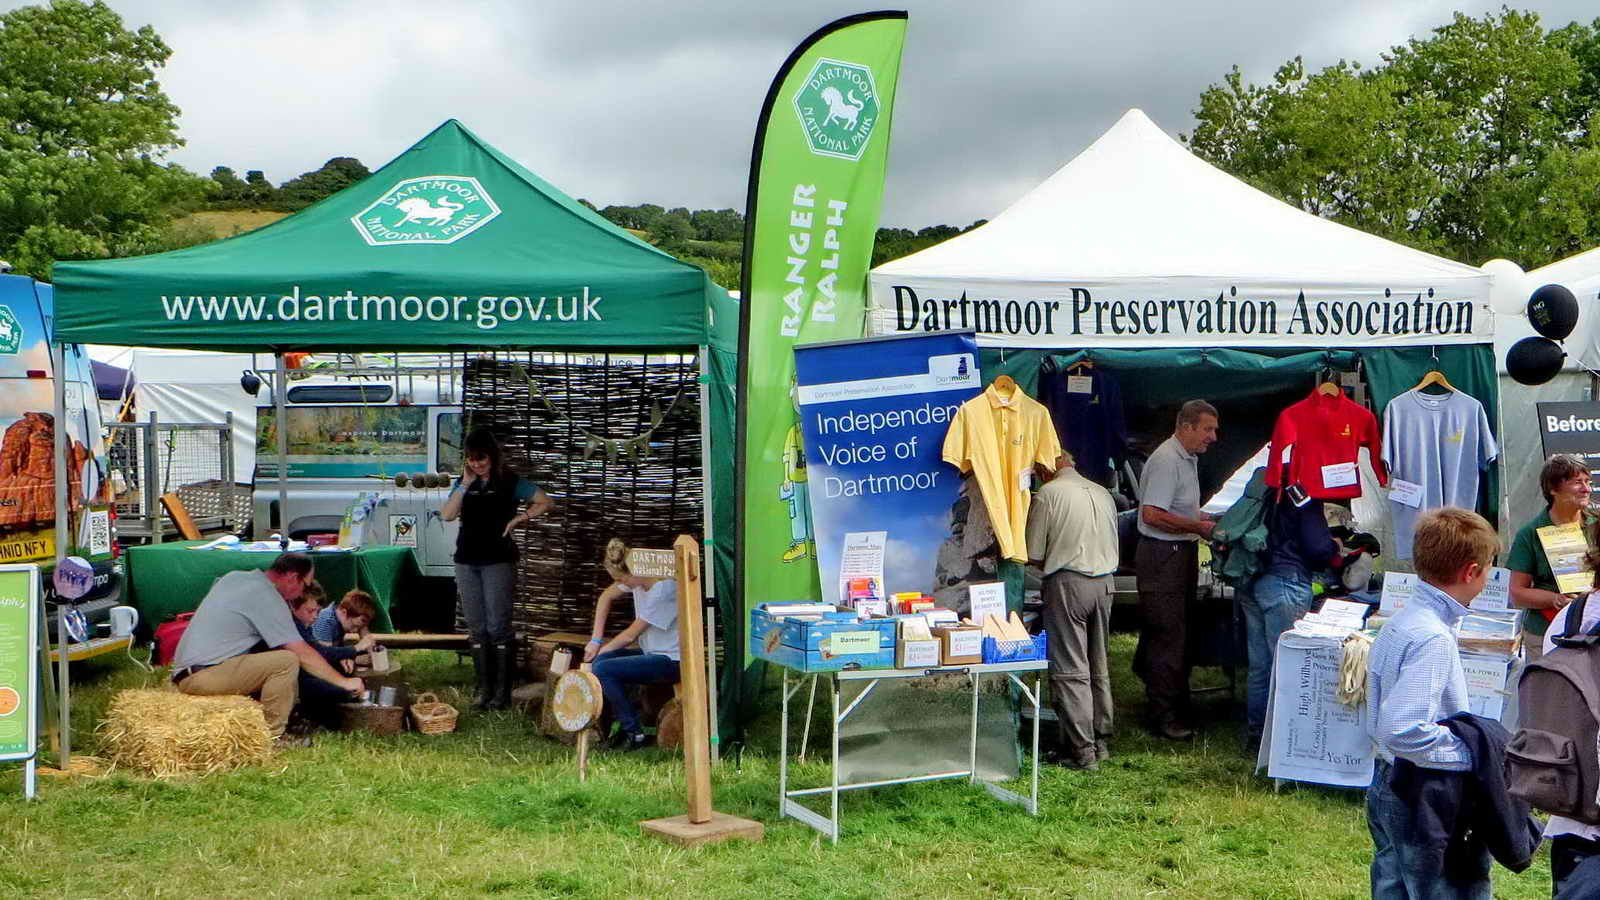 IMG_7418 Dartmoor National Park and Dartmoor Preservation Association stands neighbouring.